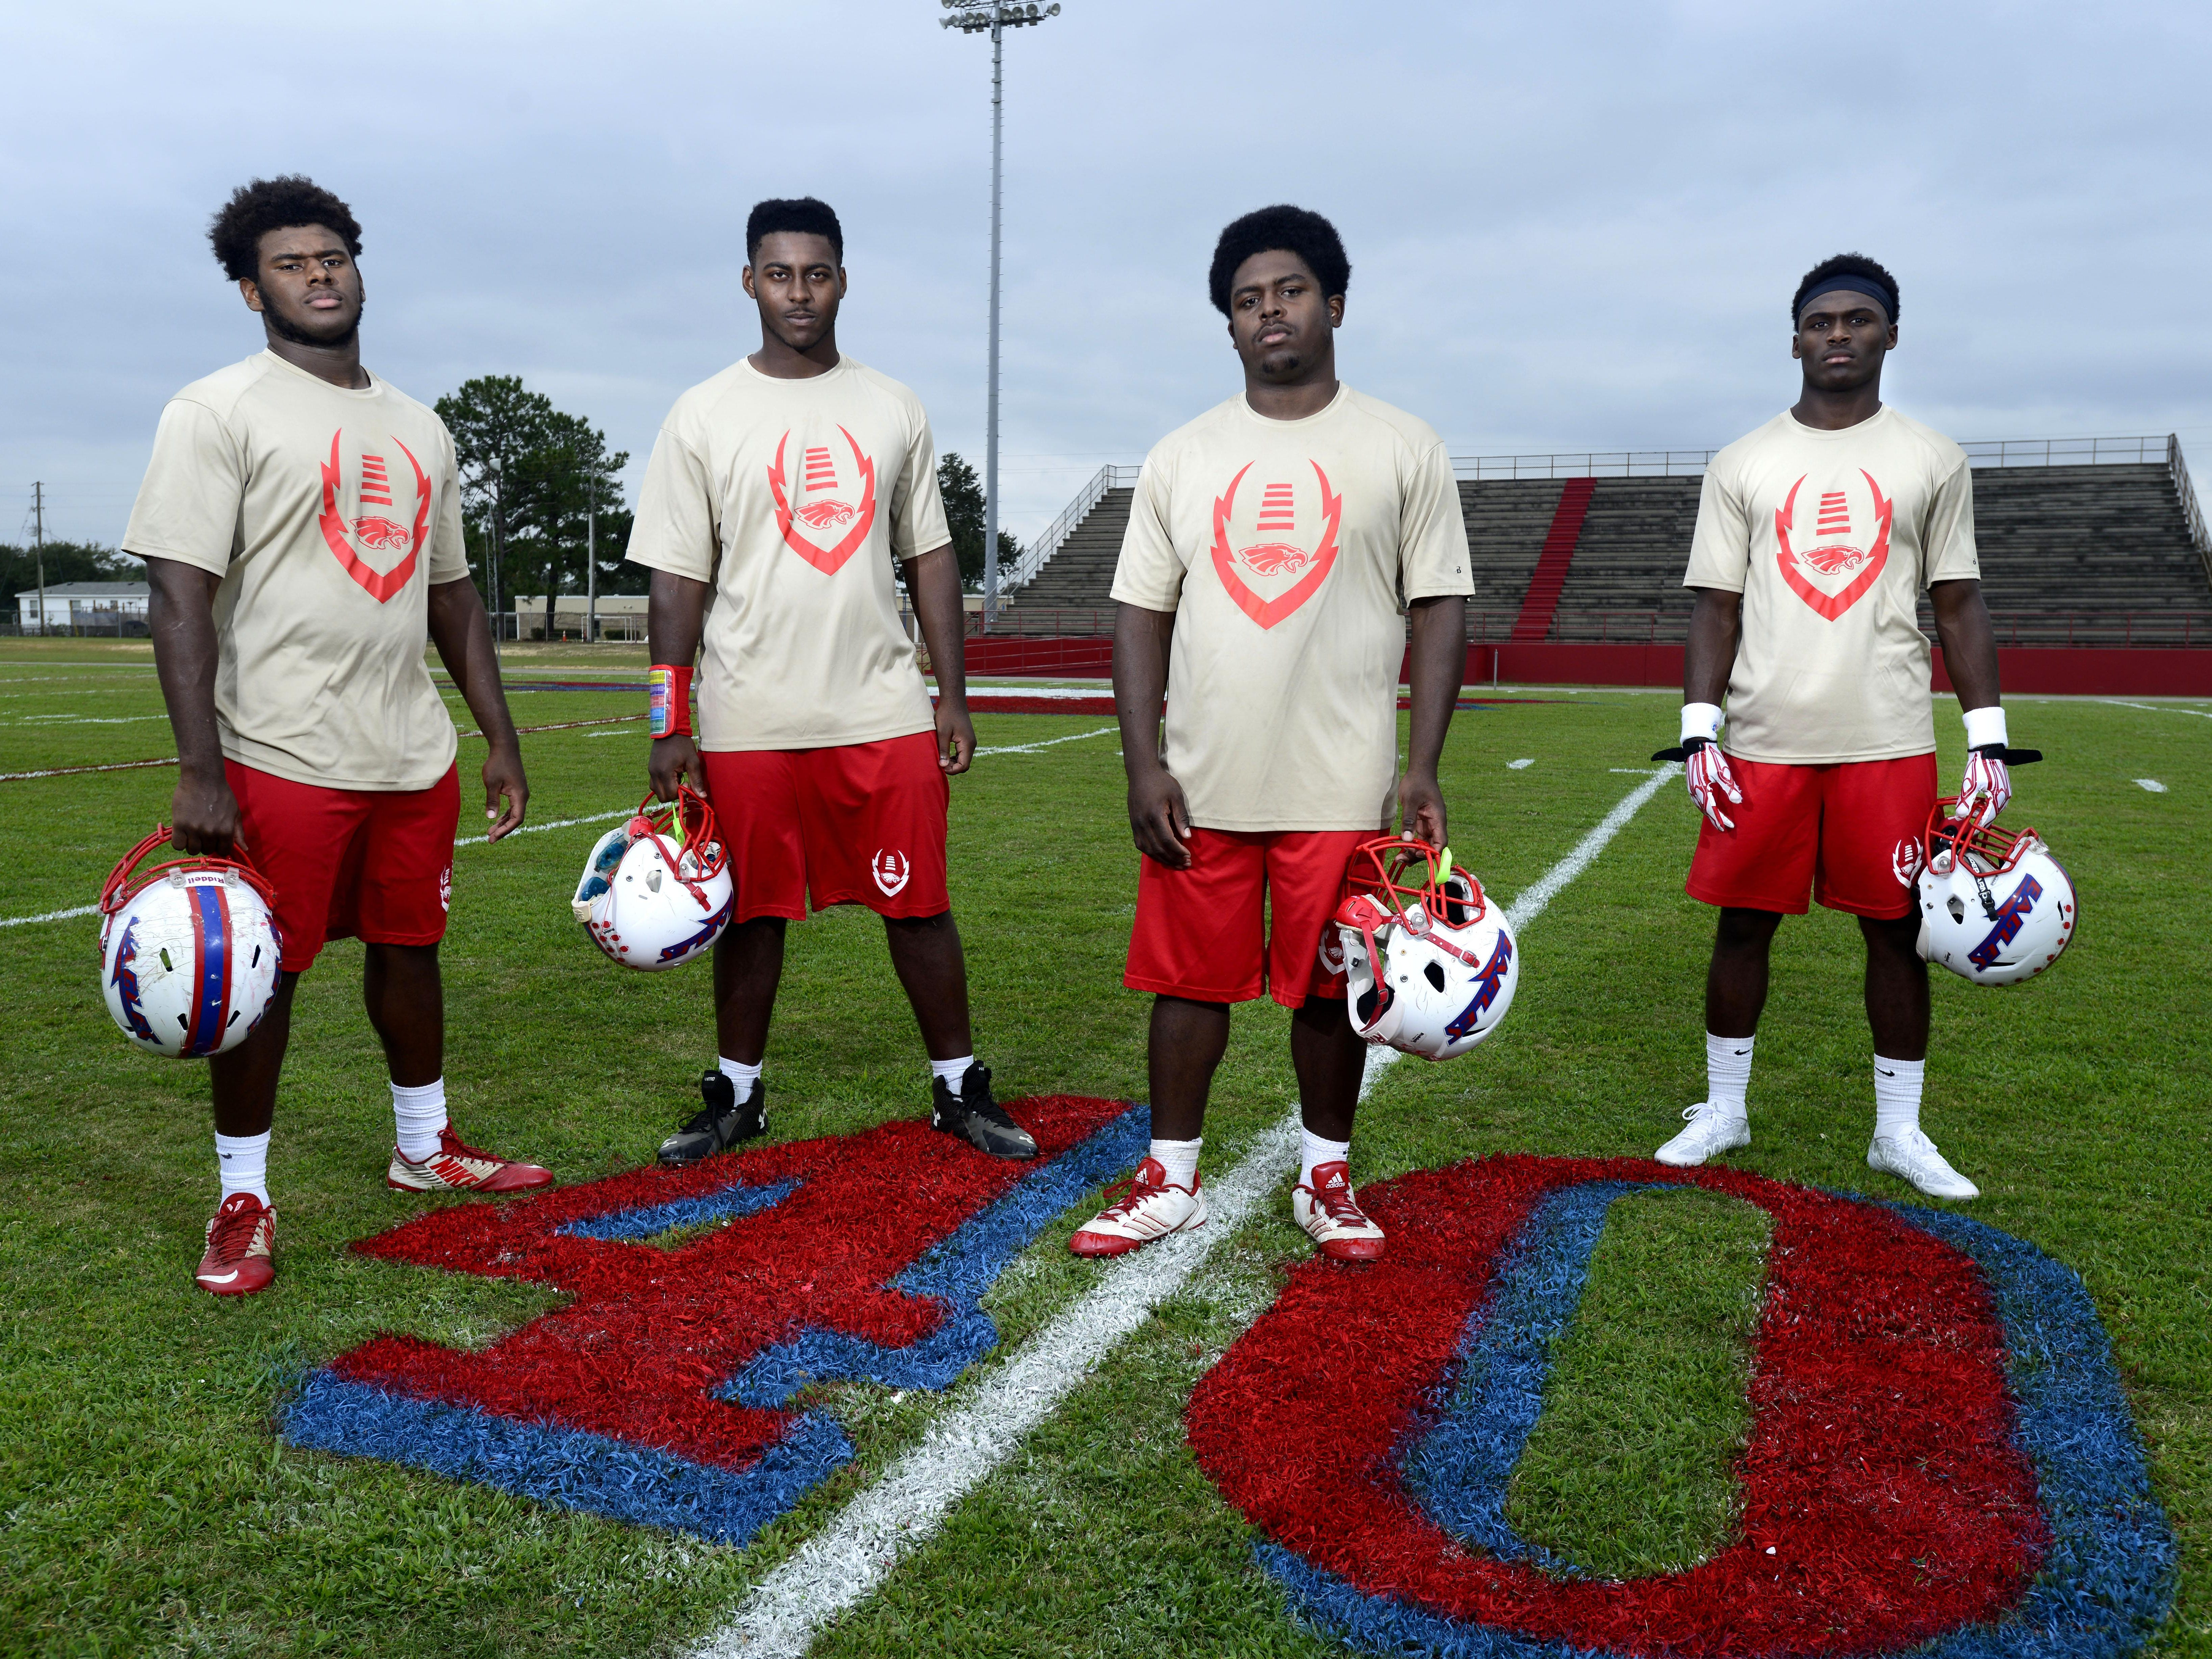 The Pine Forest Eagles are celebrating their 40th anniversary Friday as they host the Escambia Gators. Players, from left, are Jamarqus Miller, Derrick Clarke, Angelo Garay and Jaden Gardner.